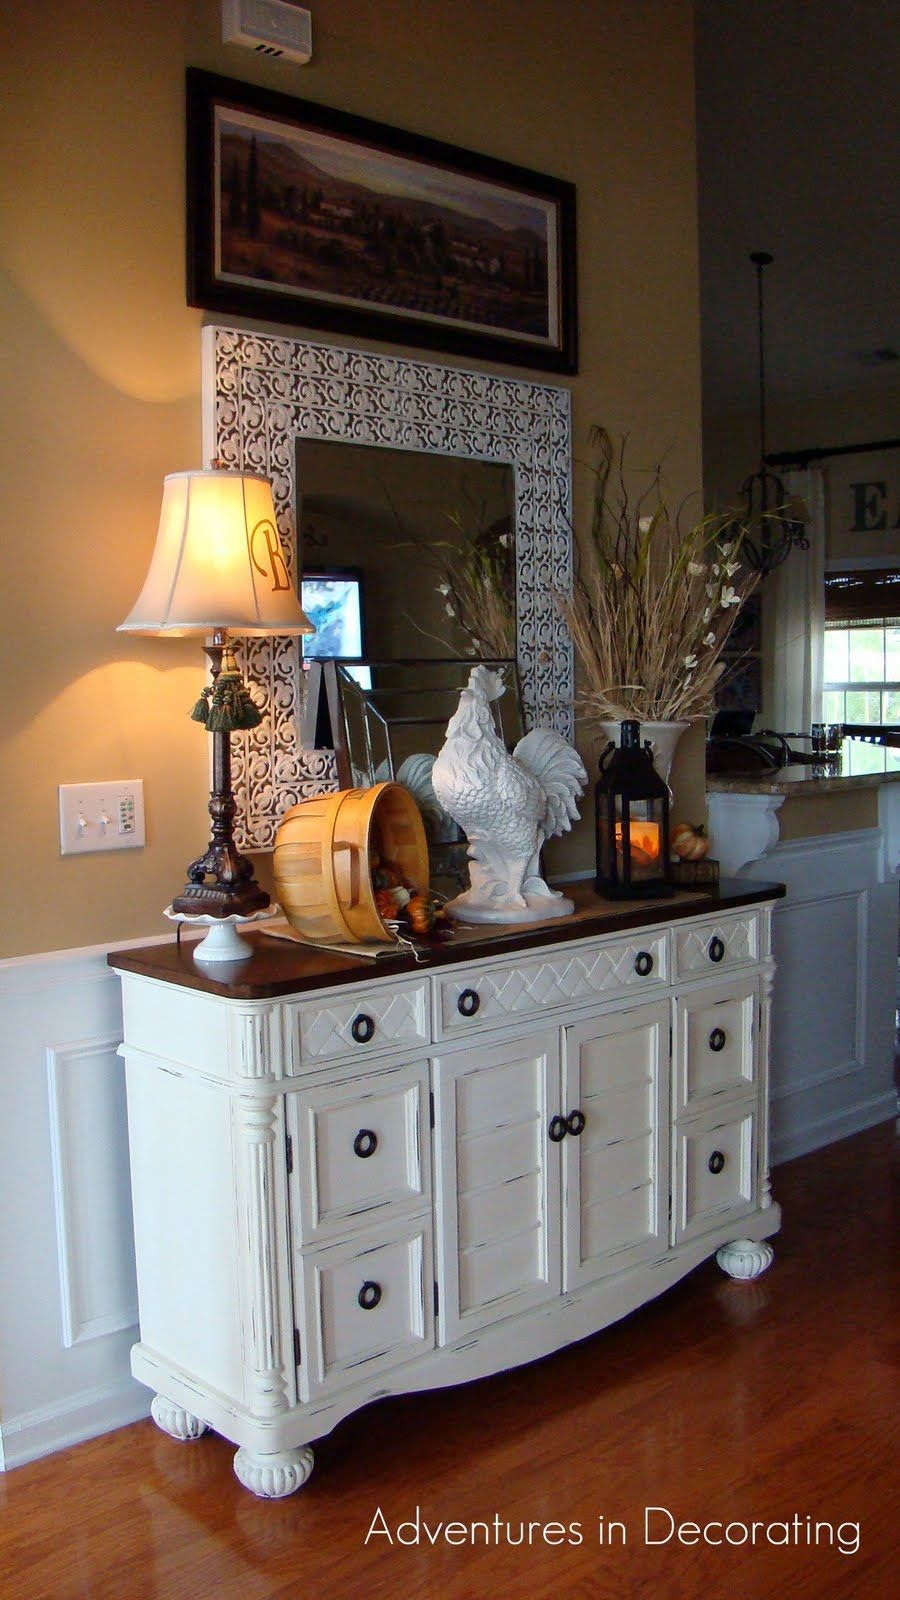 Adventures In Decorating Our Fall Kitchen: Adventures In Decorating: A Fall Vignette